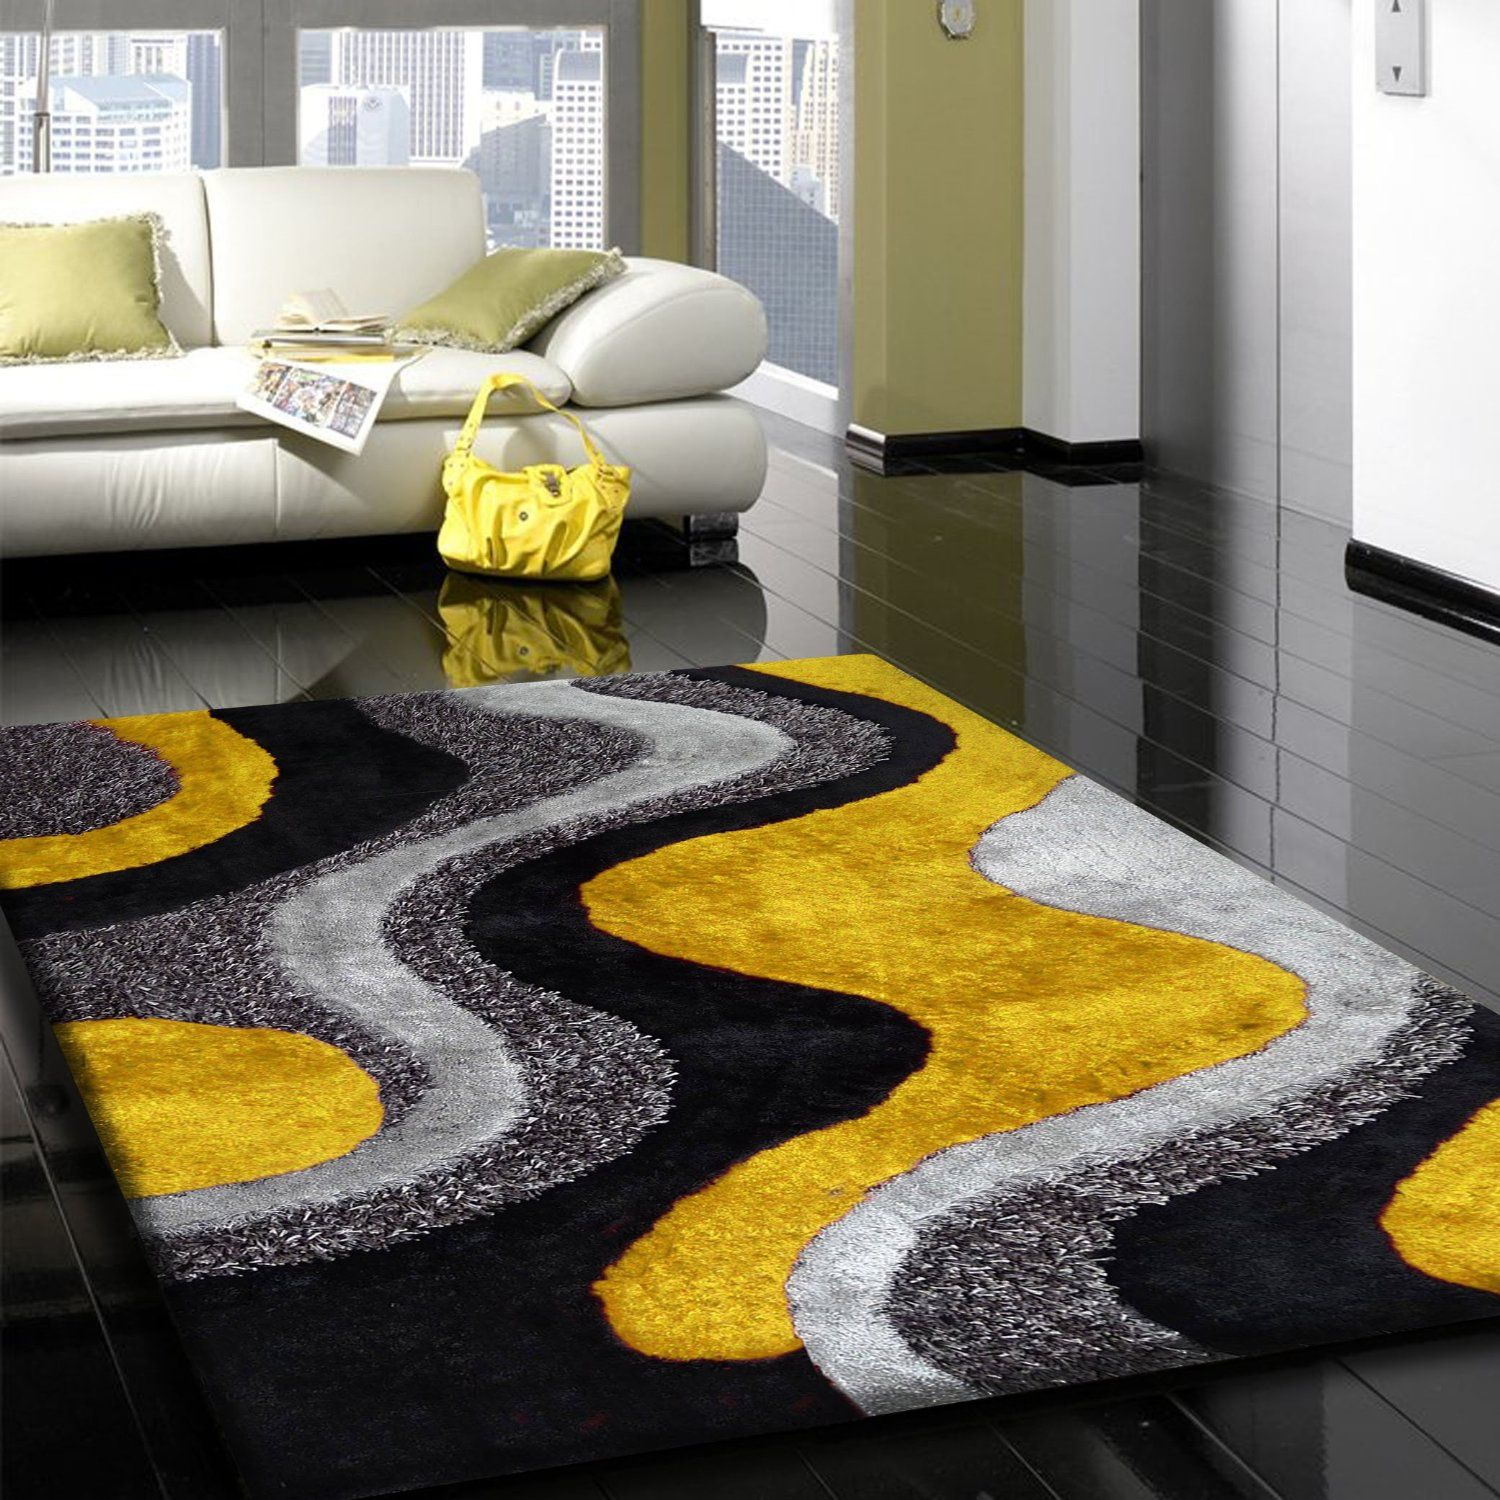 Silk grey yellow carpet floor beautiful spacios chic for Decor flooring